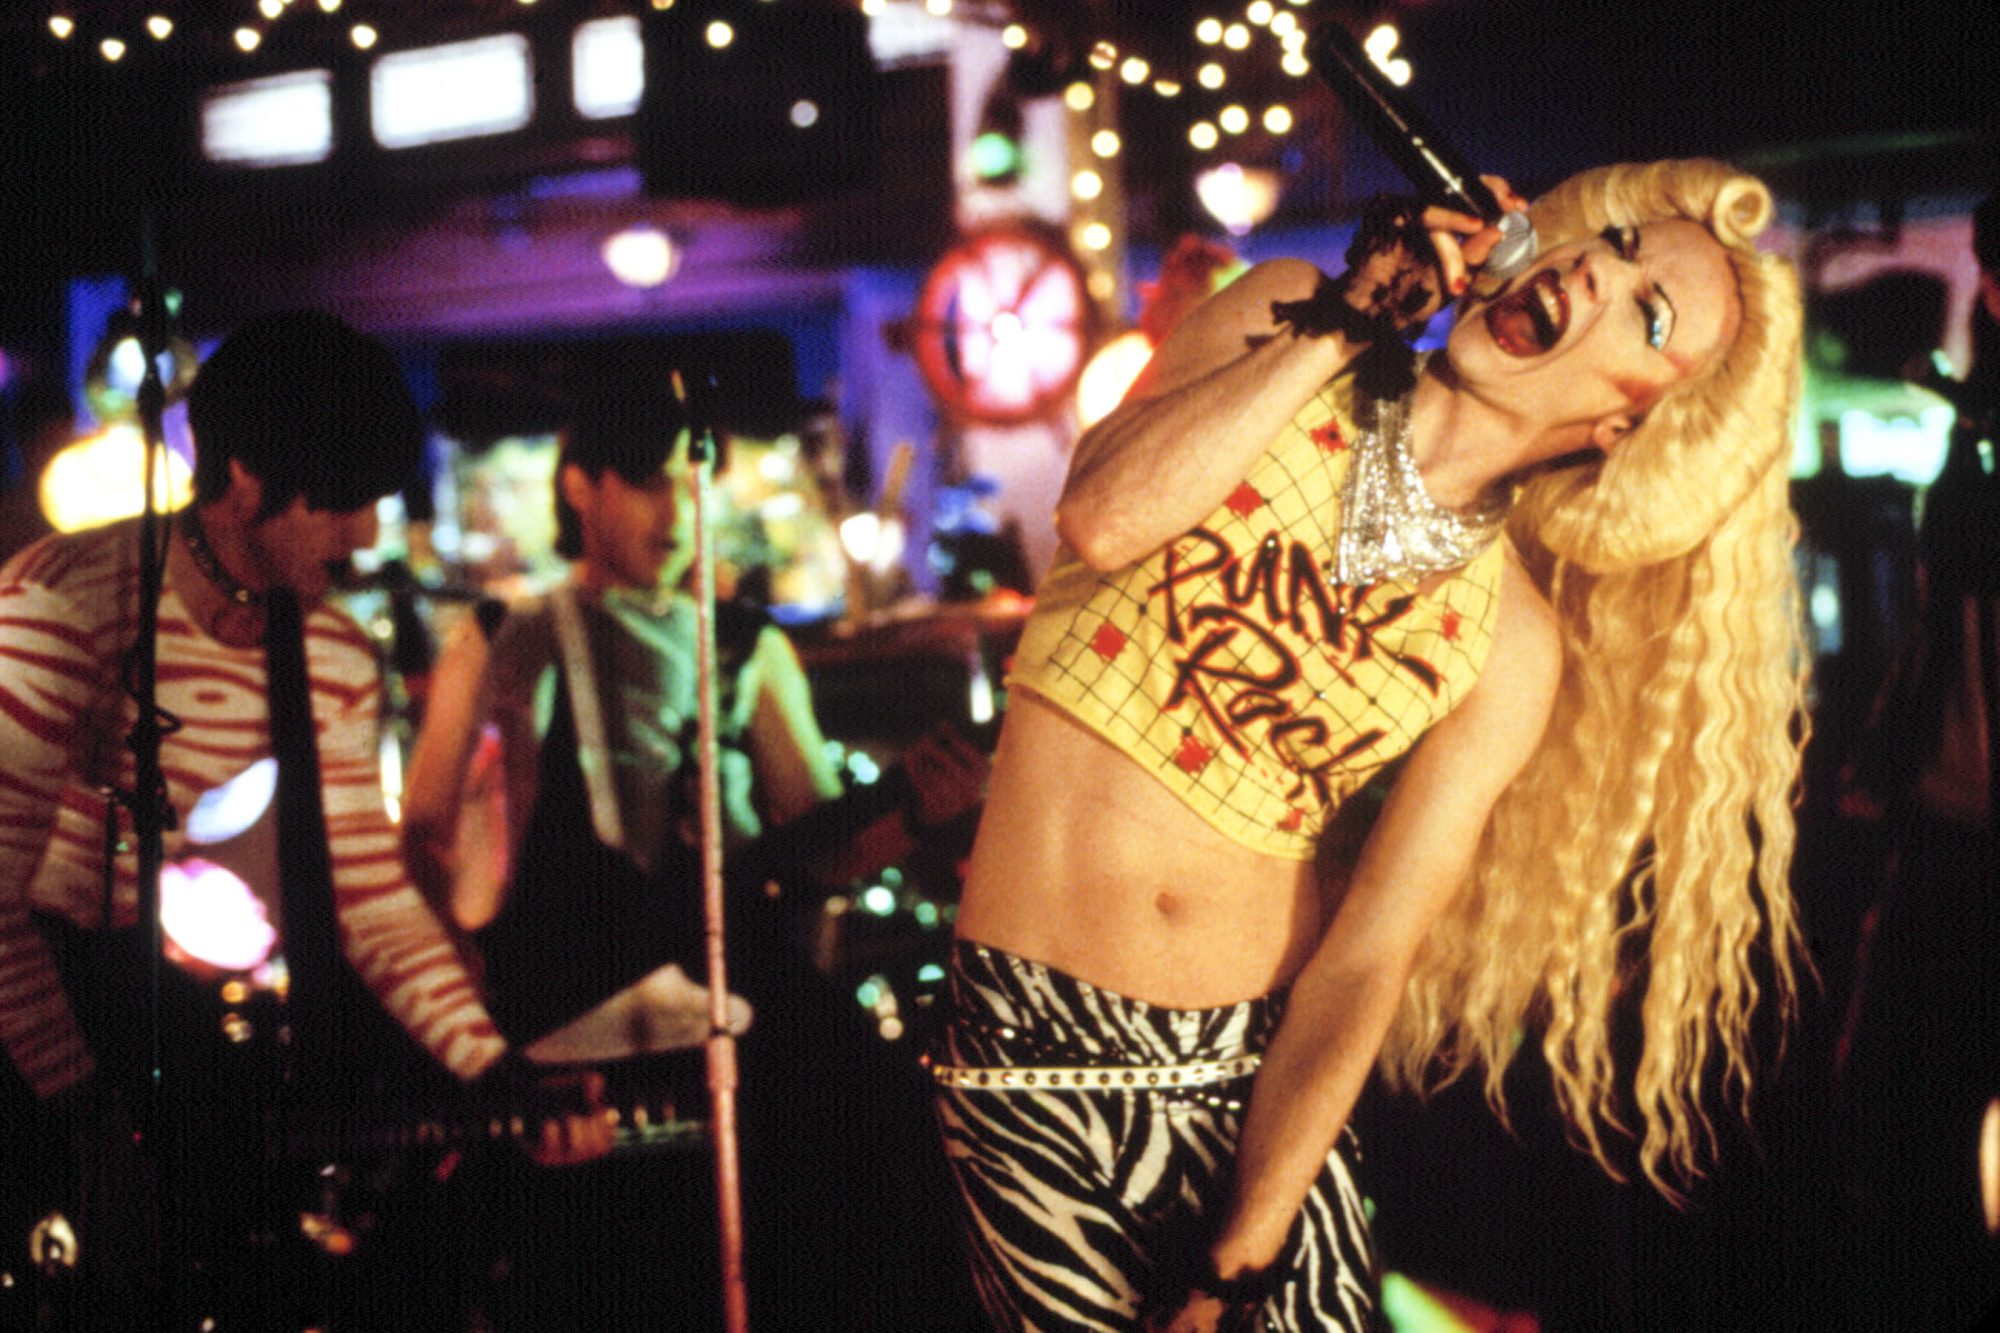 HEDWIG AND THE ANGRY INCH, John Cameron Mitchell, 2001, ©Fine Line Features/courtesy Everett Collect